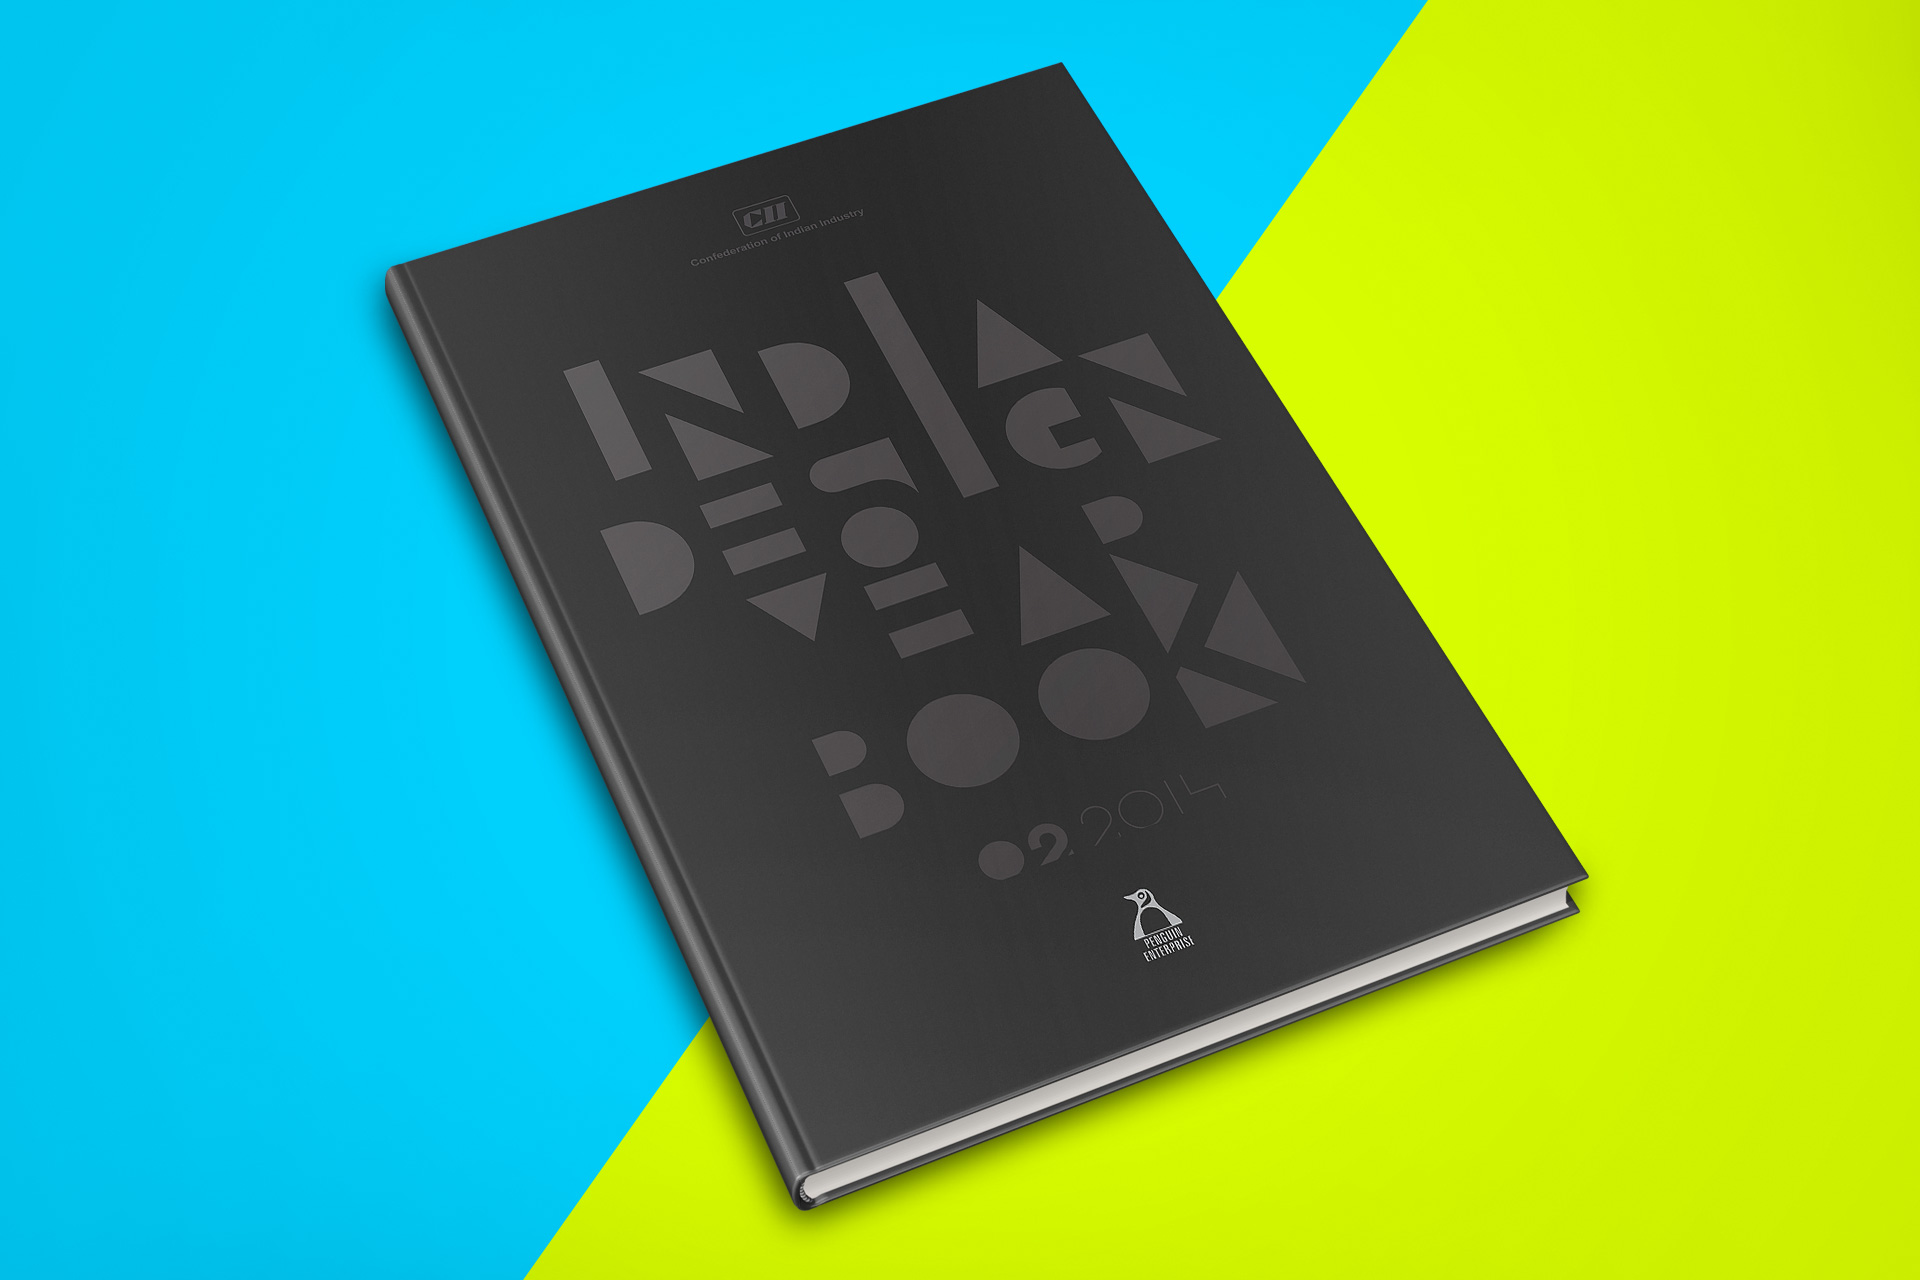 Confederation of Indian Industry India Design Book 2014